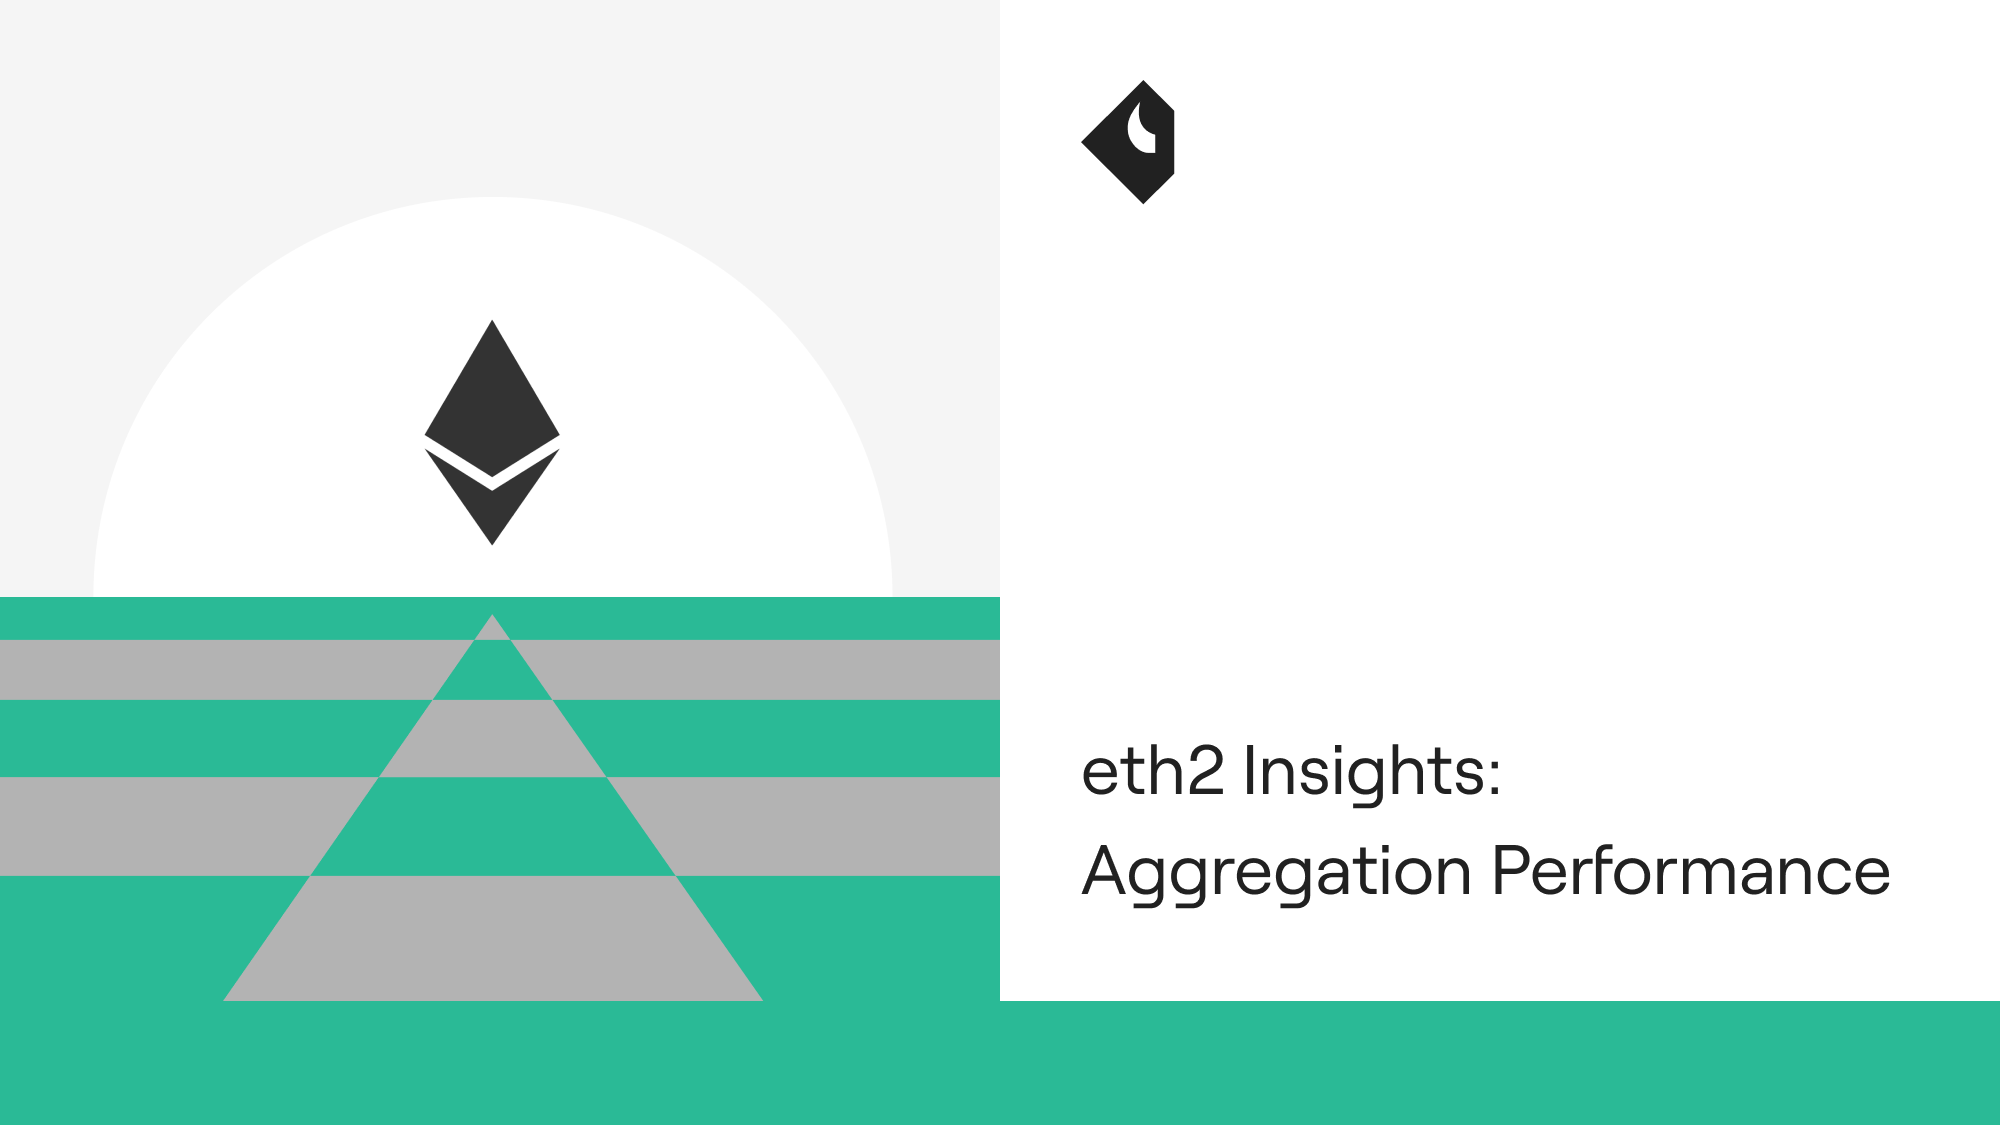 eth2 Insights: Aggregation Performance